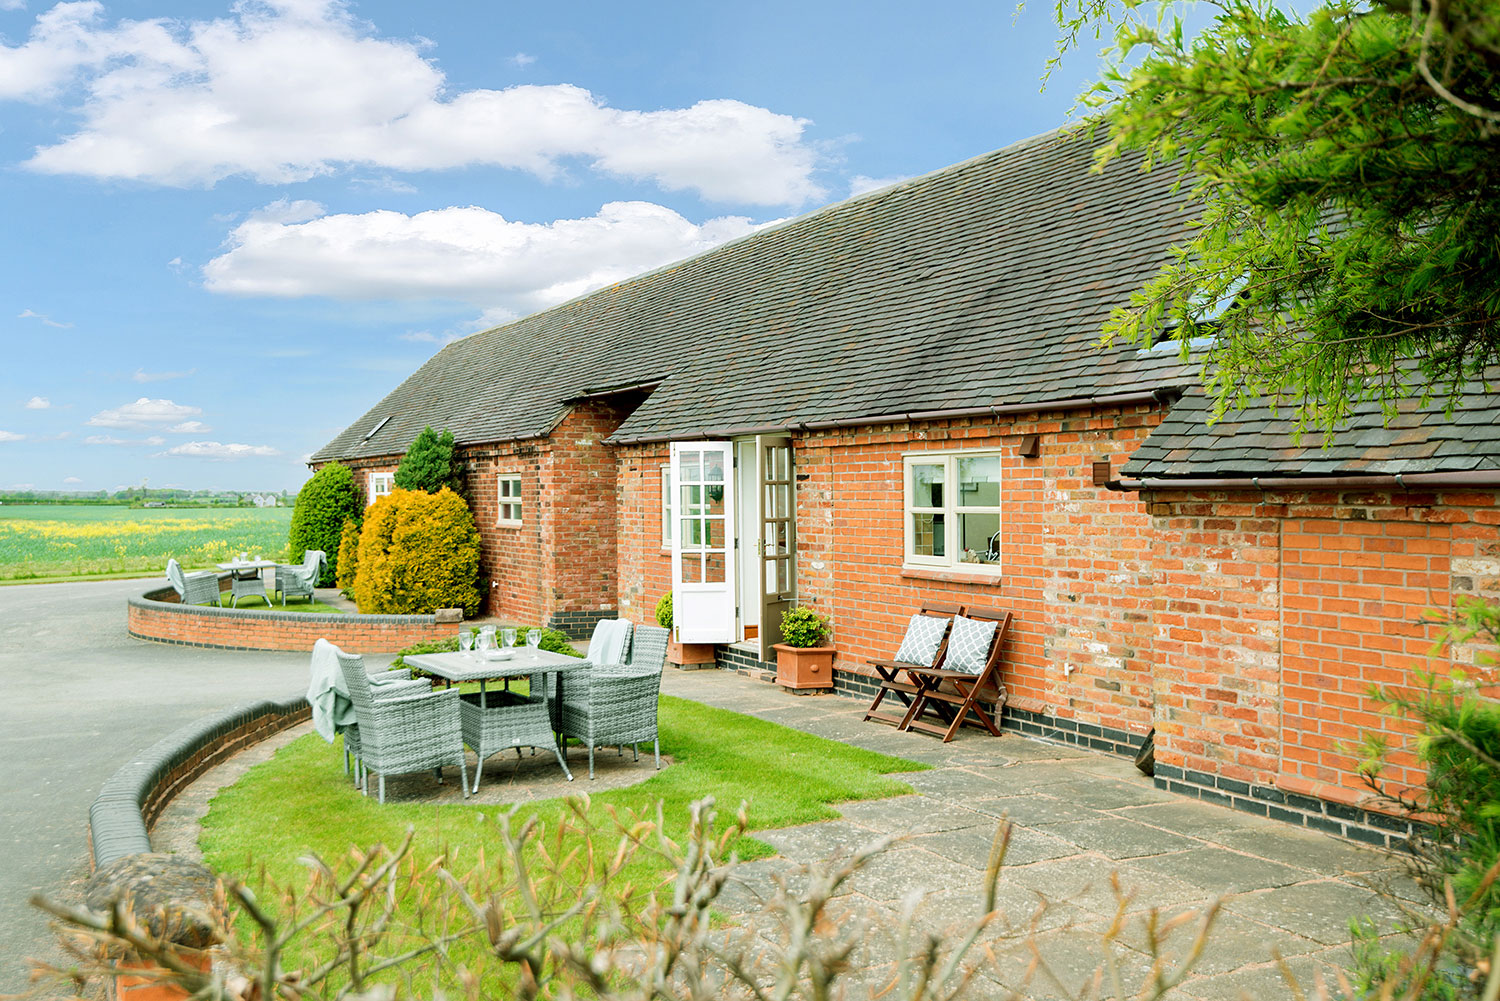 Luxury self-catering accommodation set amid the cornfields in rural Leicestershire   Upper Rectory Farm Cottages